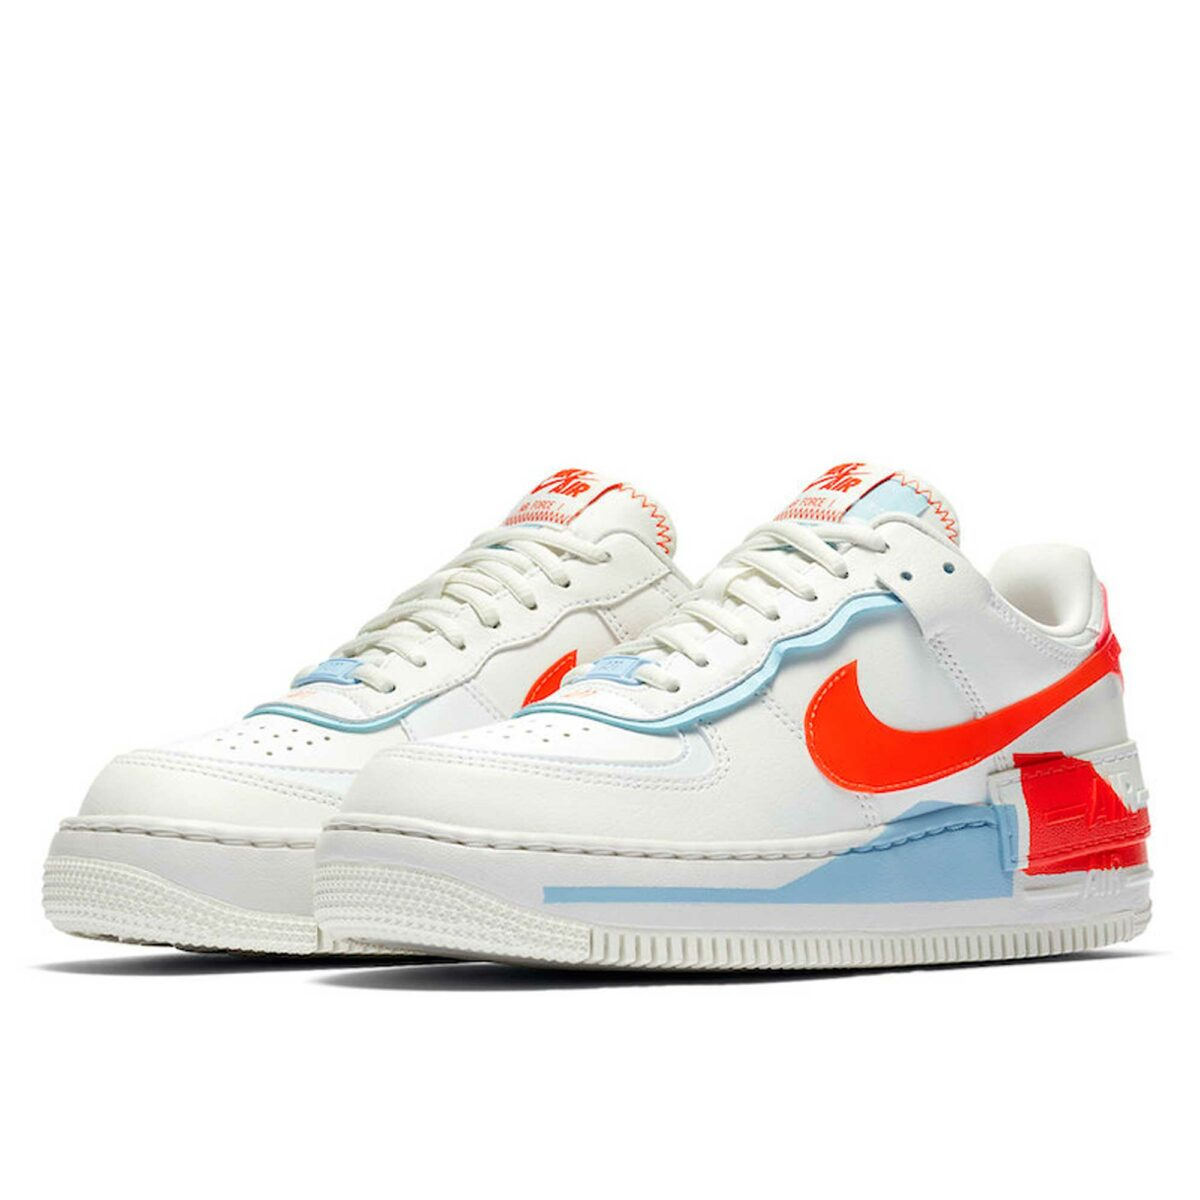 nike air force 1 shadow summit white orange cq9503_100 купить